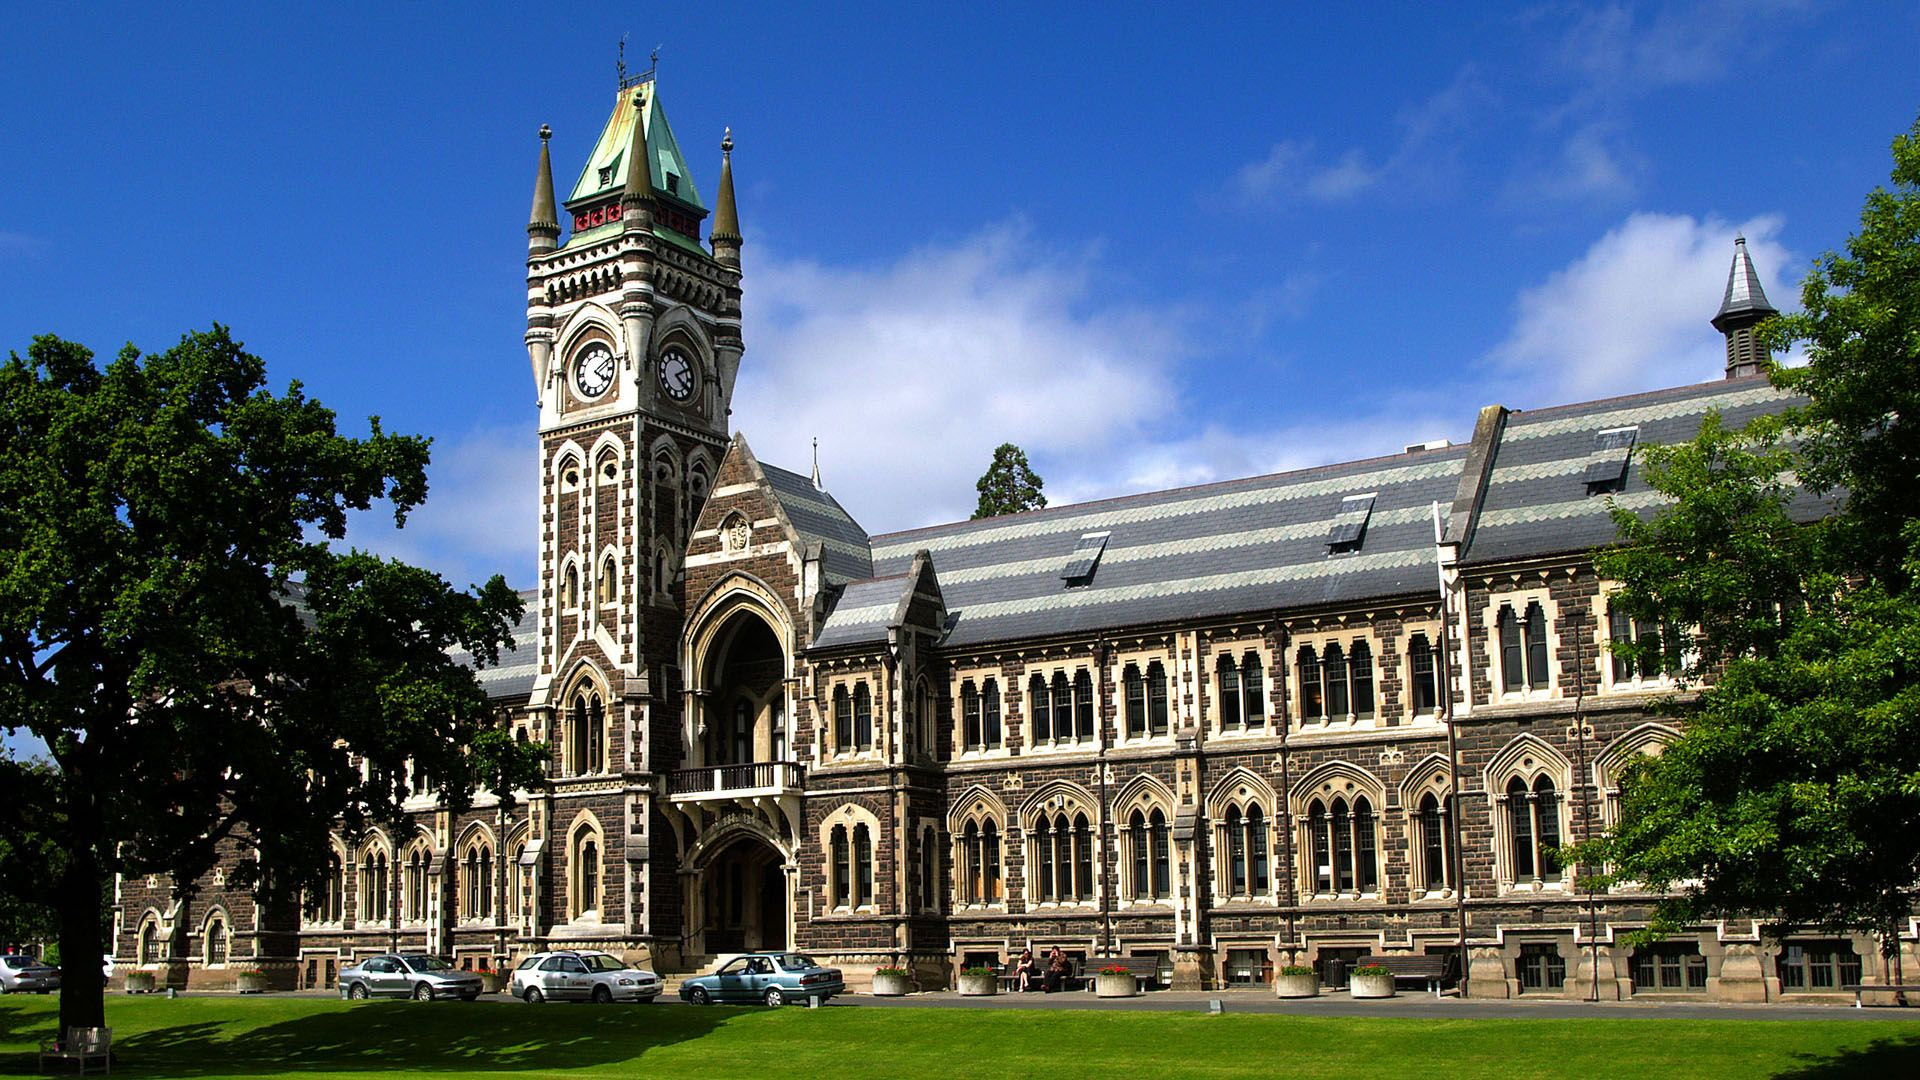 University of Otago HD Wallpaper FullHDWpp   Full HD Wallpapers 1920x1080